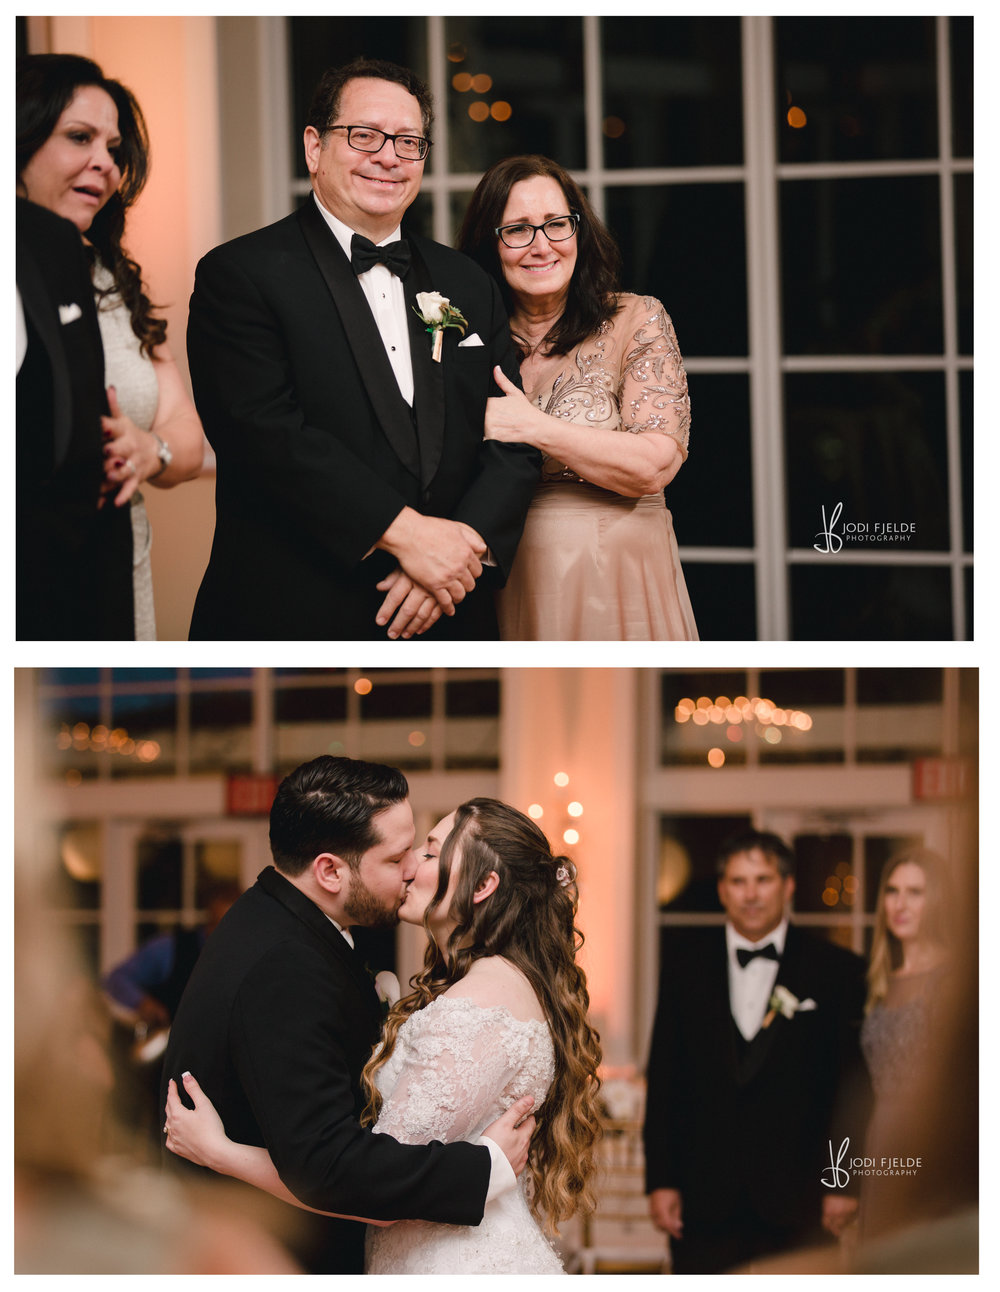 Deer_Creek_Country_Club_Wedding_Jodi_Fjelde_Photography_Andrea_Jason_17.jpg